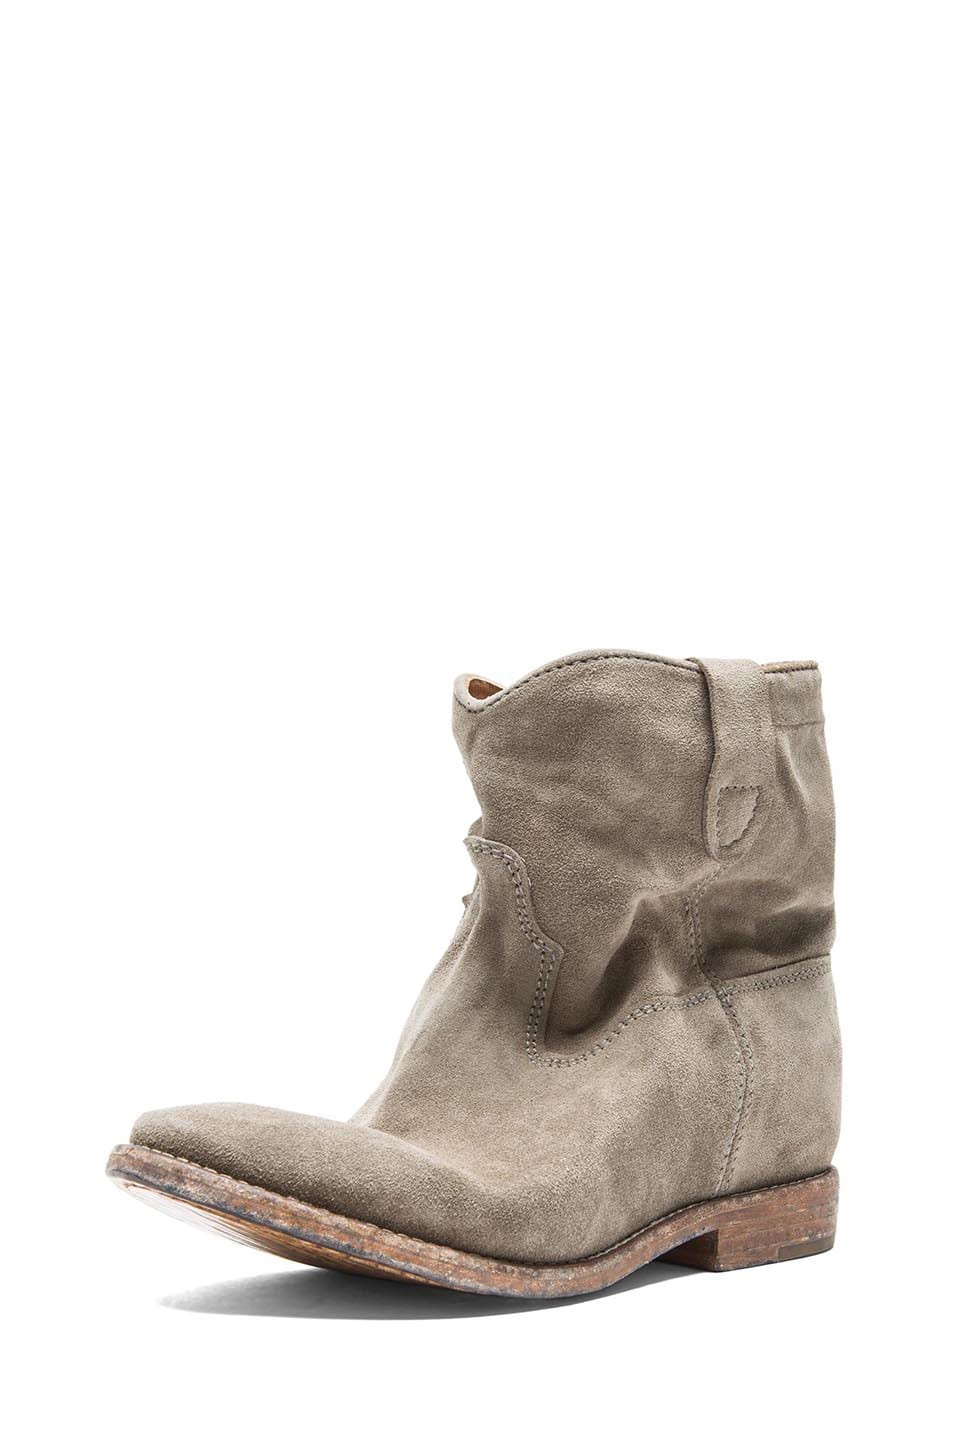 Image 2 of Isabel Marant Crisi Calfskin Velvet Leather Boots in Taupe